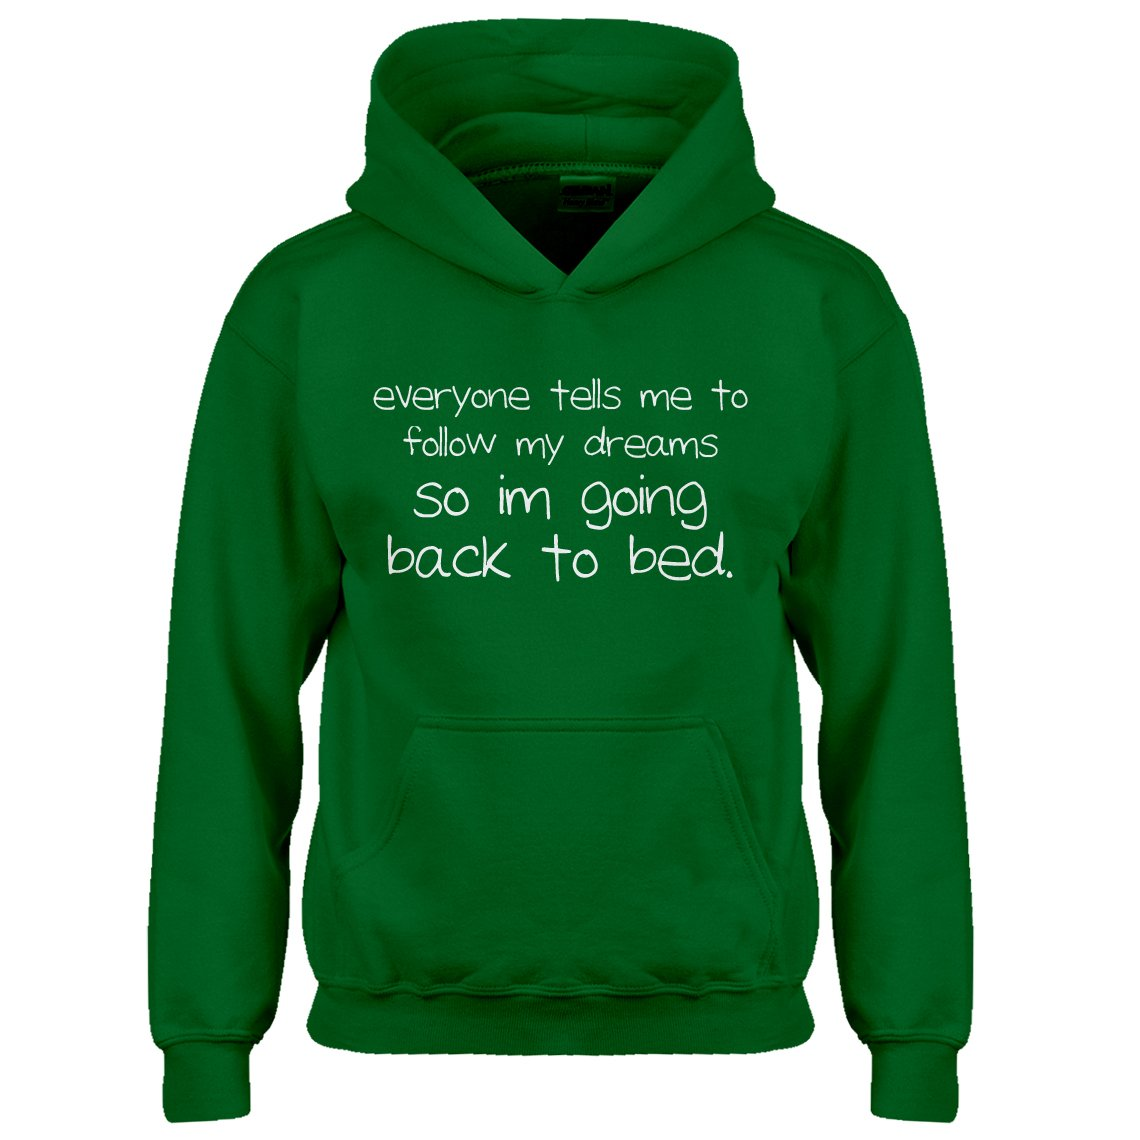 Indica Plateau Youth Back to Bed Kids Hoodie